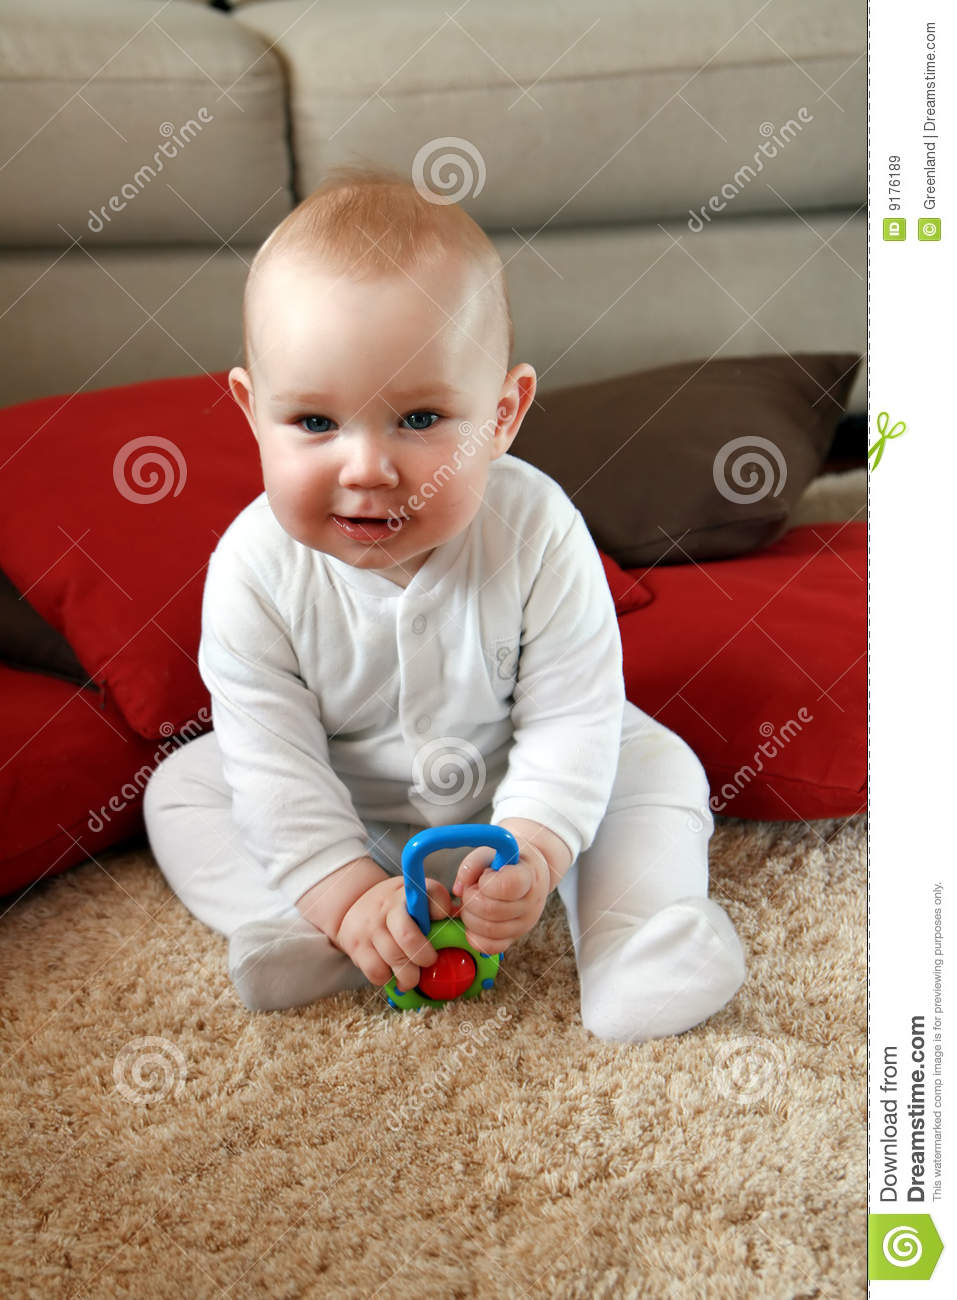 Boy Toys Baby : Baby boy with his first toys royalty free stock images